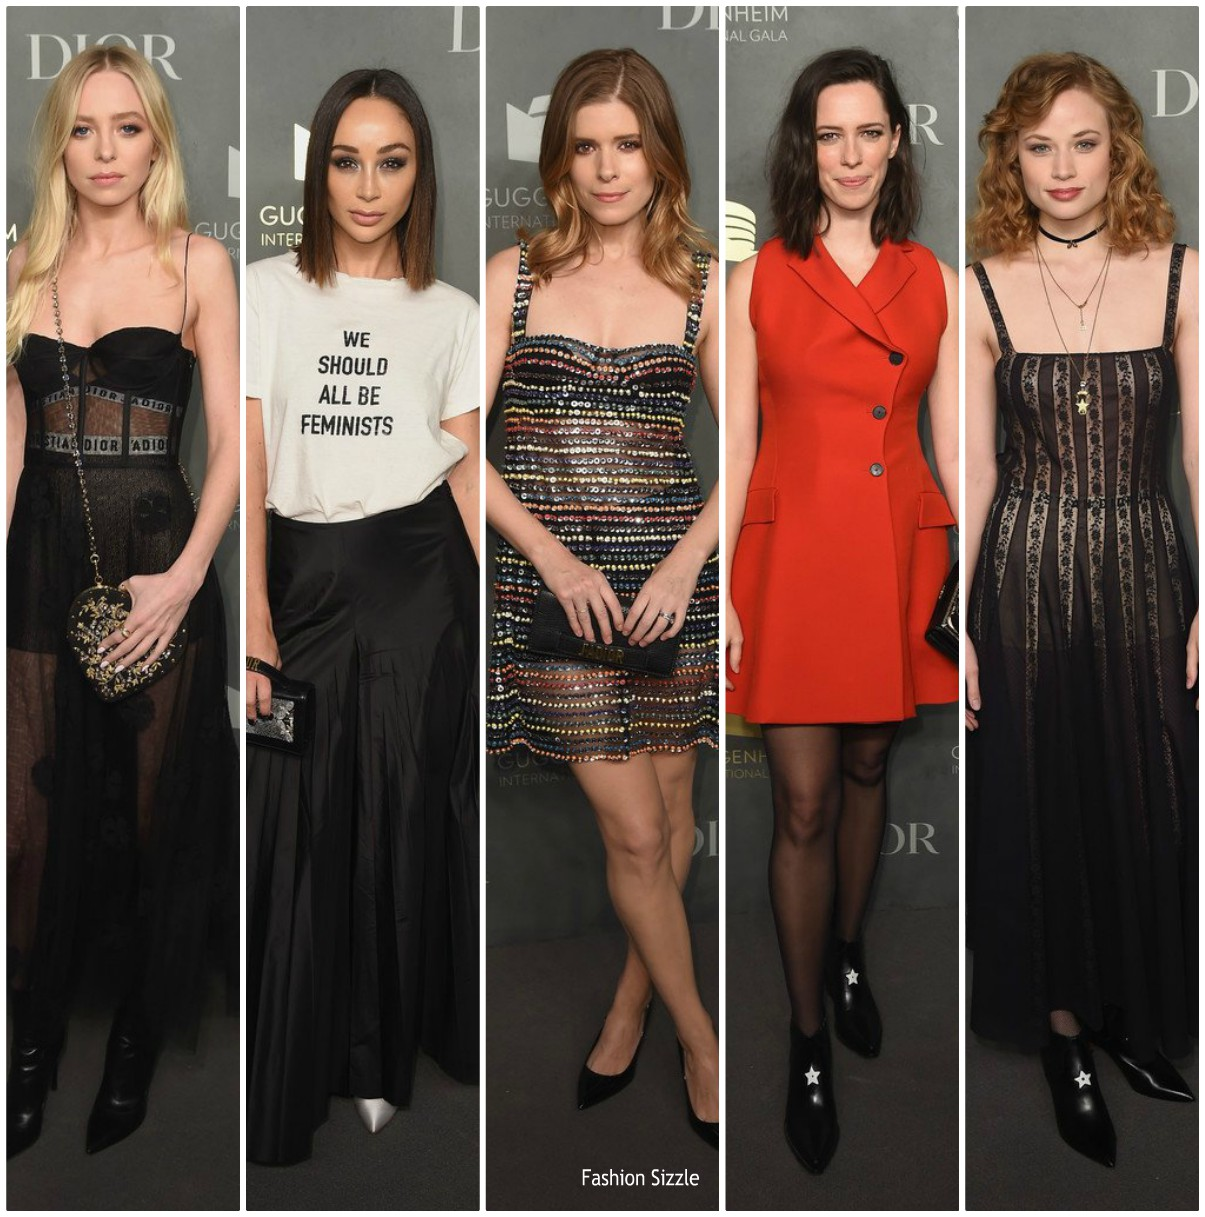 To acquire International guggenheim gala pre party pictures trends